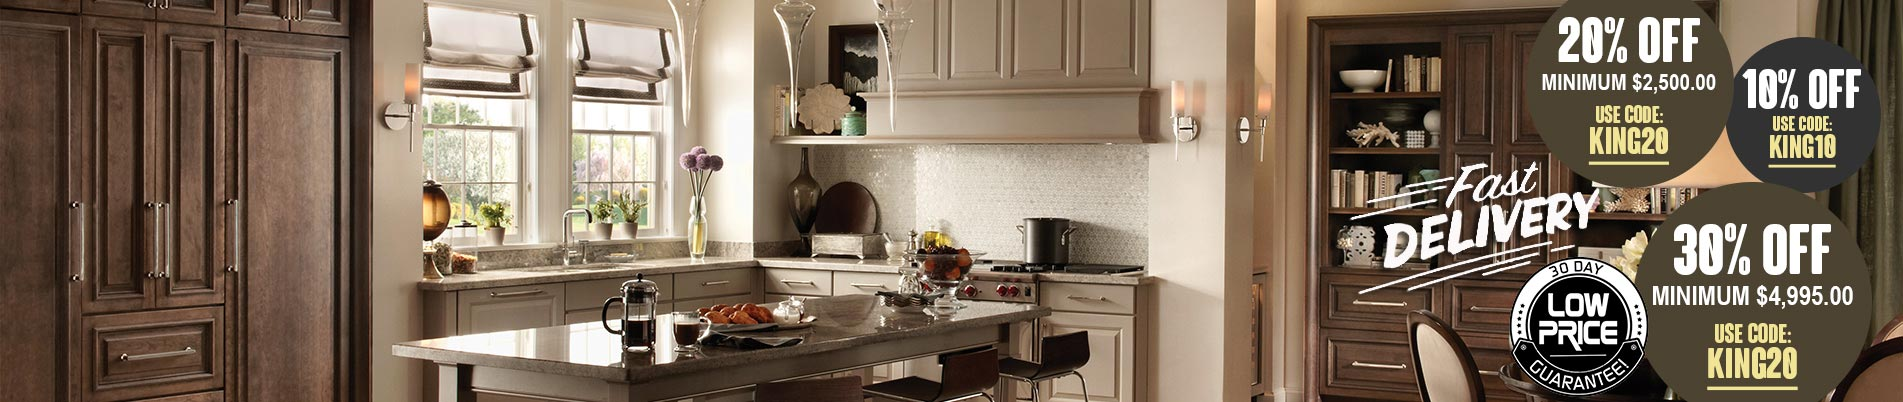 Ready To Assemble Kitchen Cabinets Earthy Vintage Styled Kitchen Shelves Kitchen Cabinets From